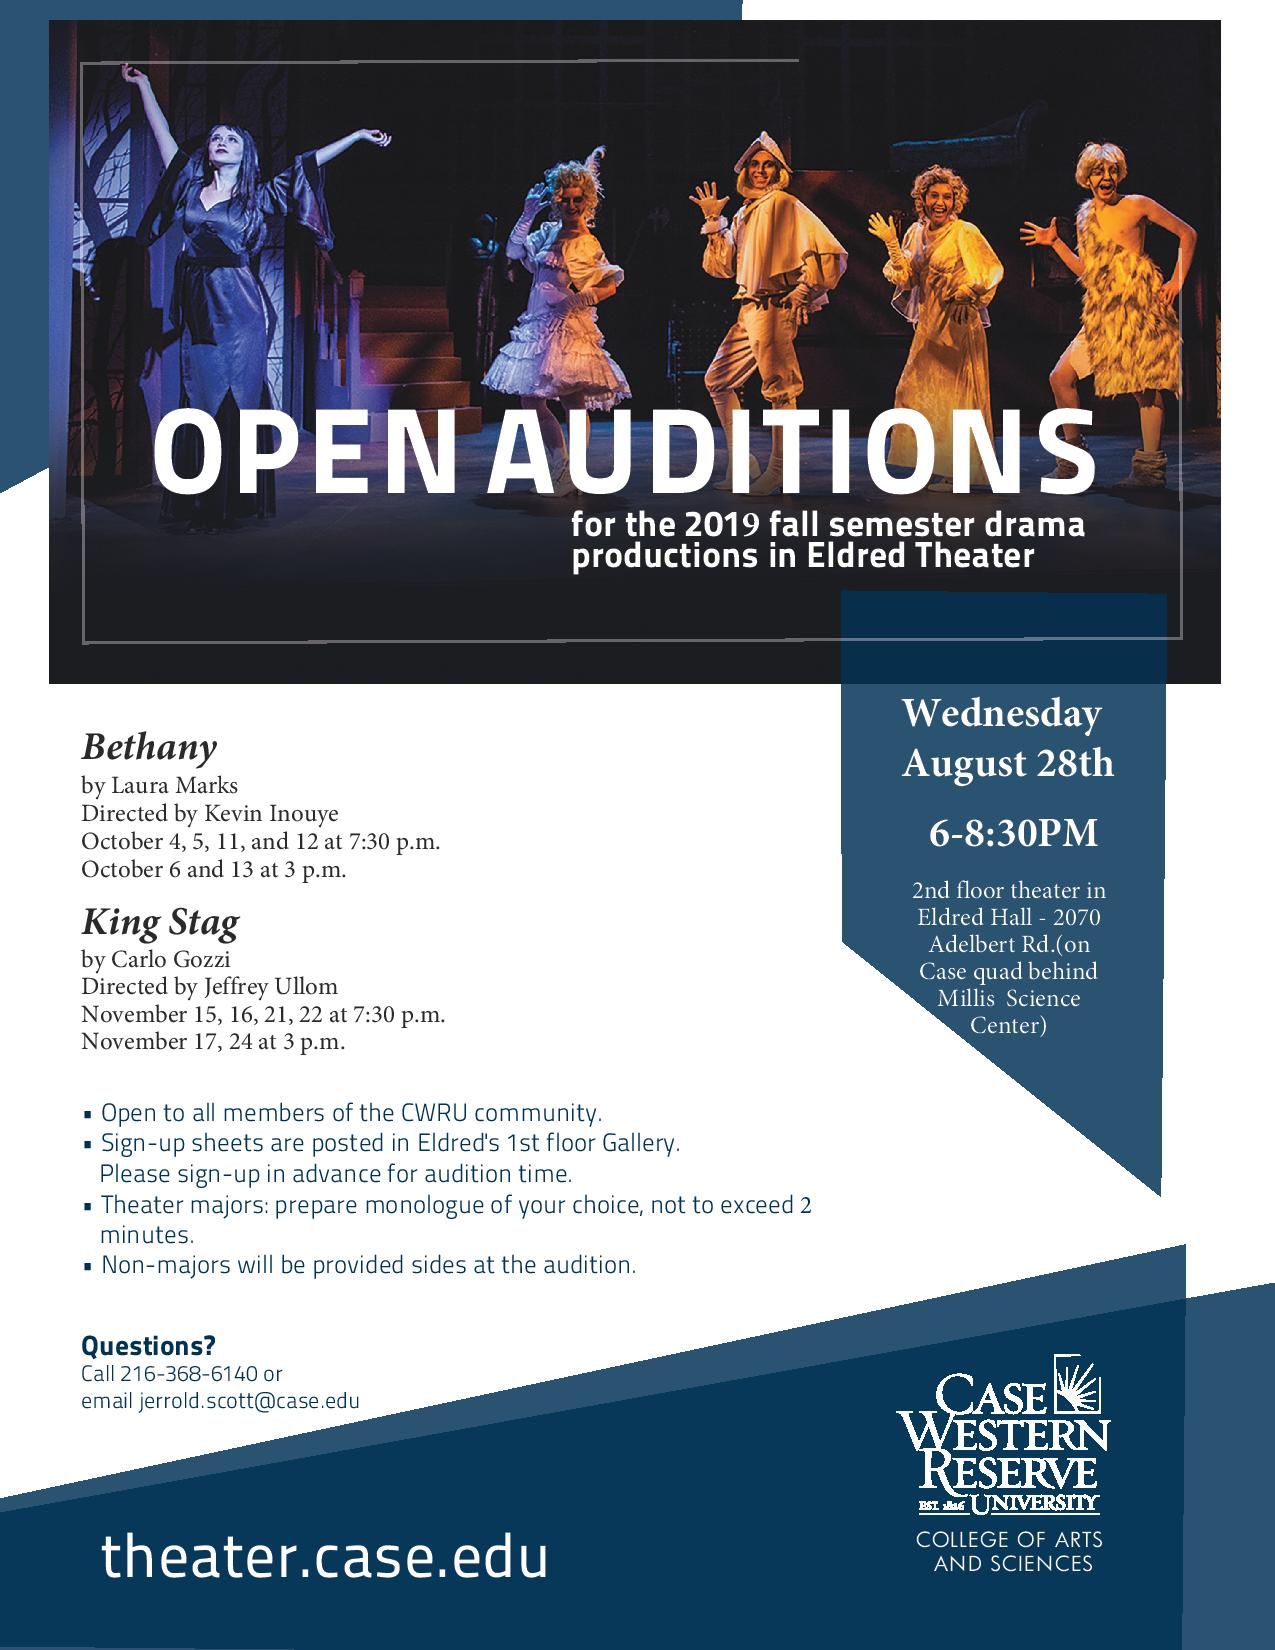 Open Auditions for Fall Productions - Department of Theater